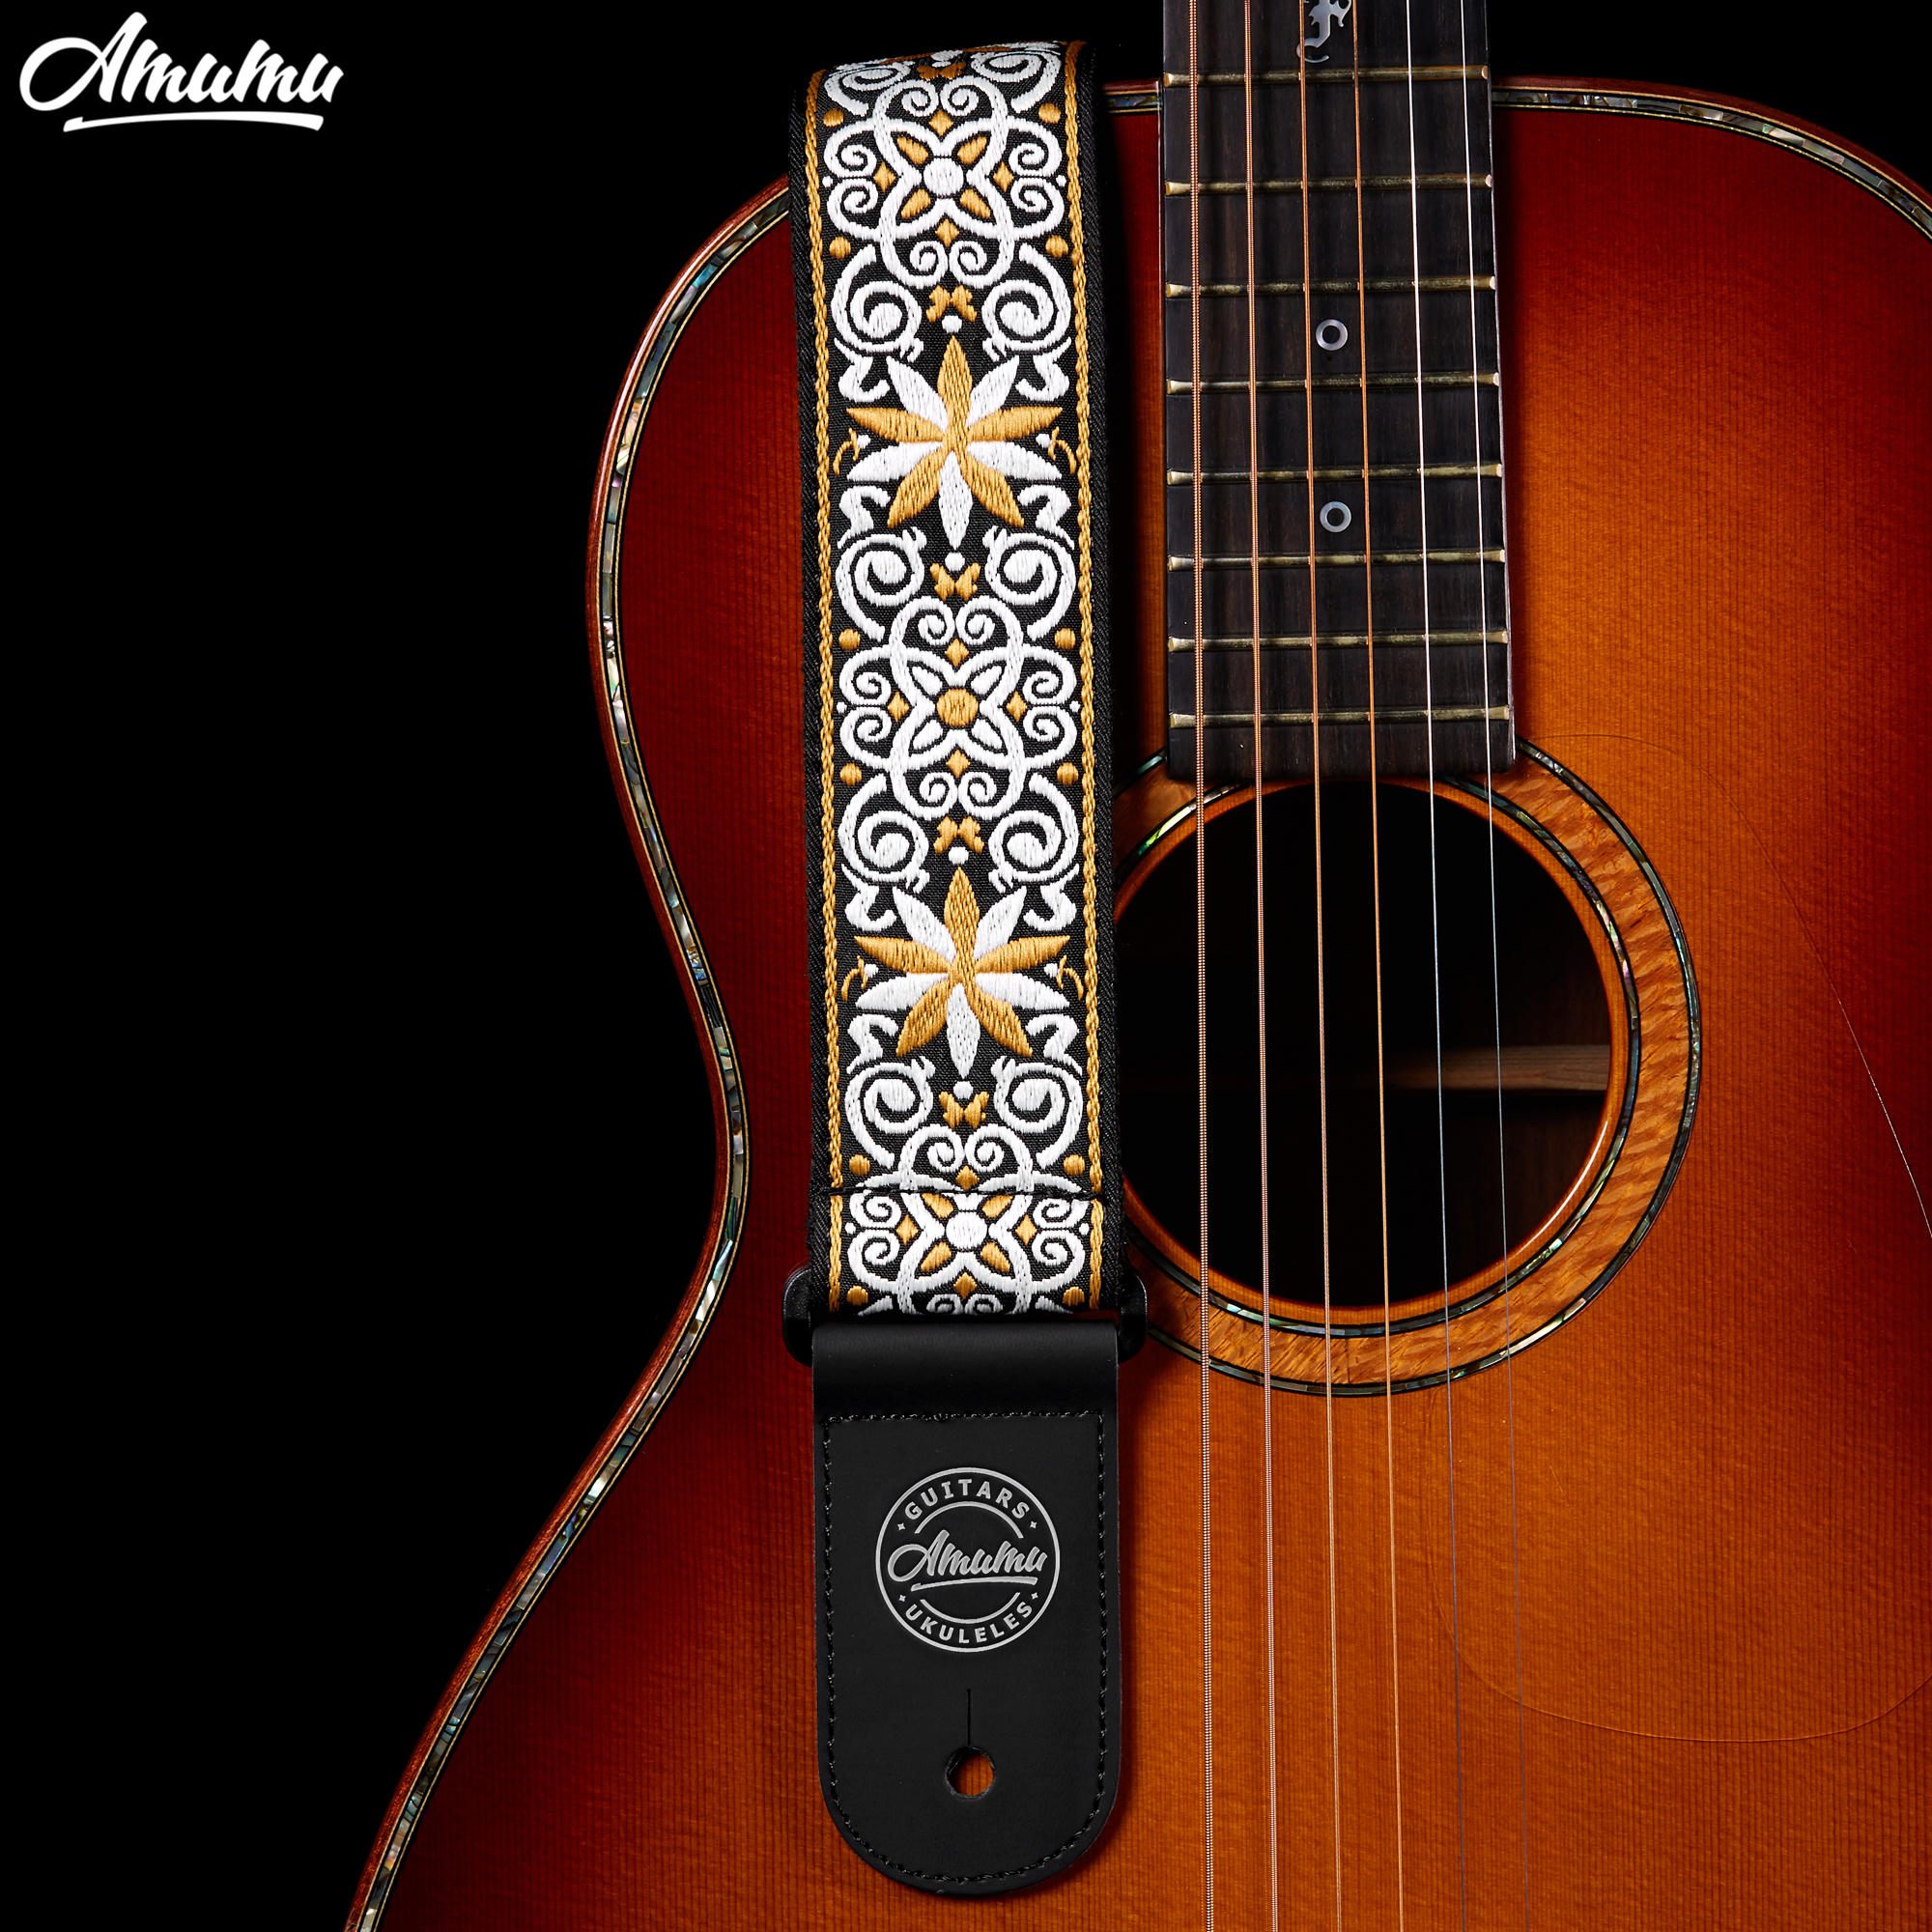 Amumu Woodstock jacquard Cotton Guitar Straps with Leather End for Folk Acoustic Electric Guitar 89-156cm Length 5cm Width S110 купить